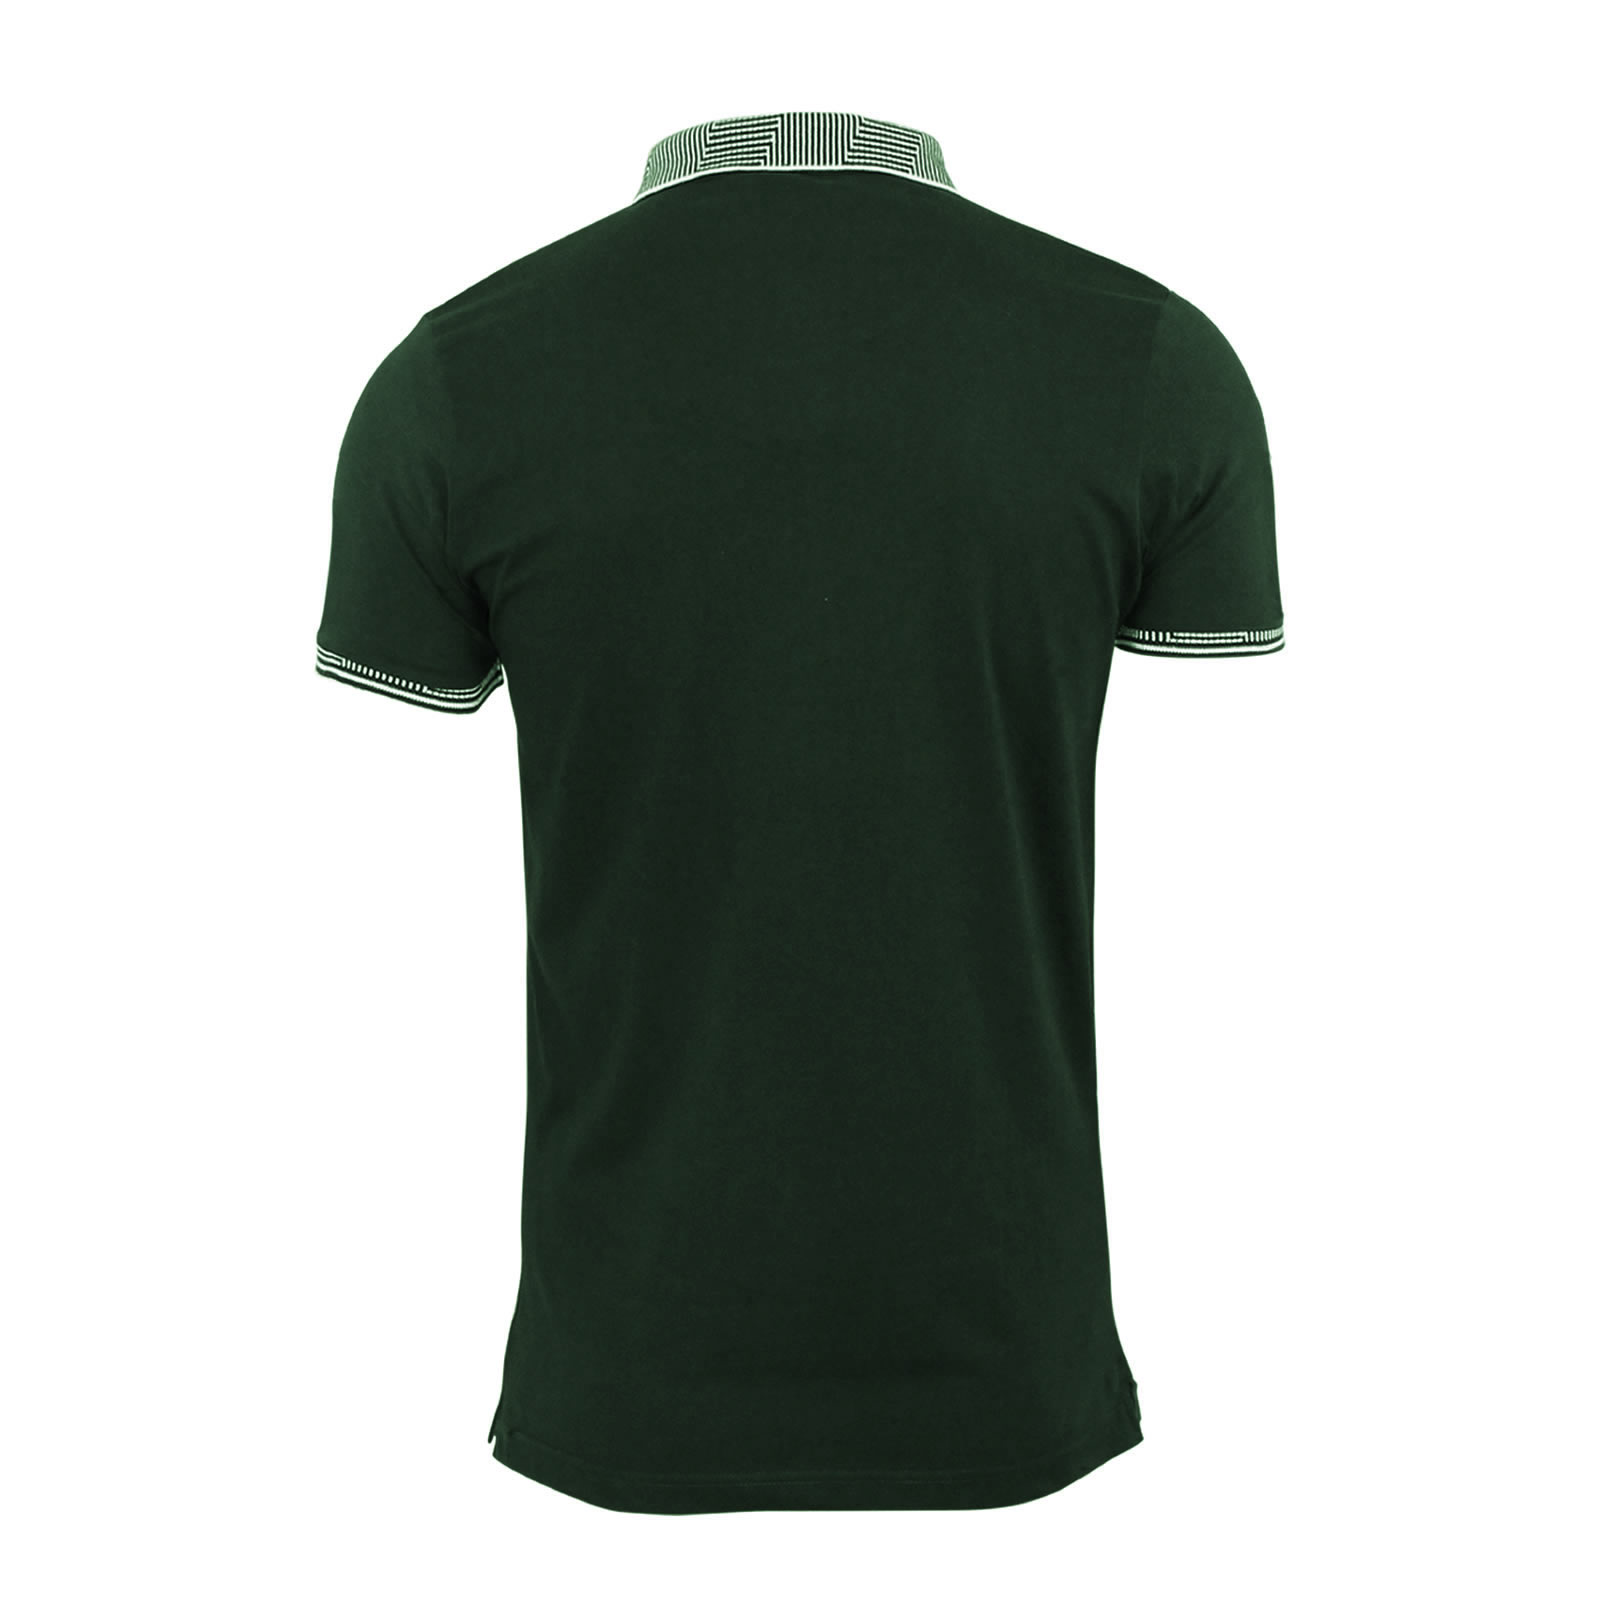 Mens-Polo-T-Shirt-Brave-Soul-Glover-Cotton-Collared-Short-Sleeve-Casual-Top thumbnail 22